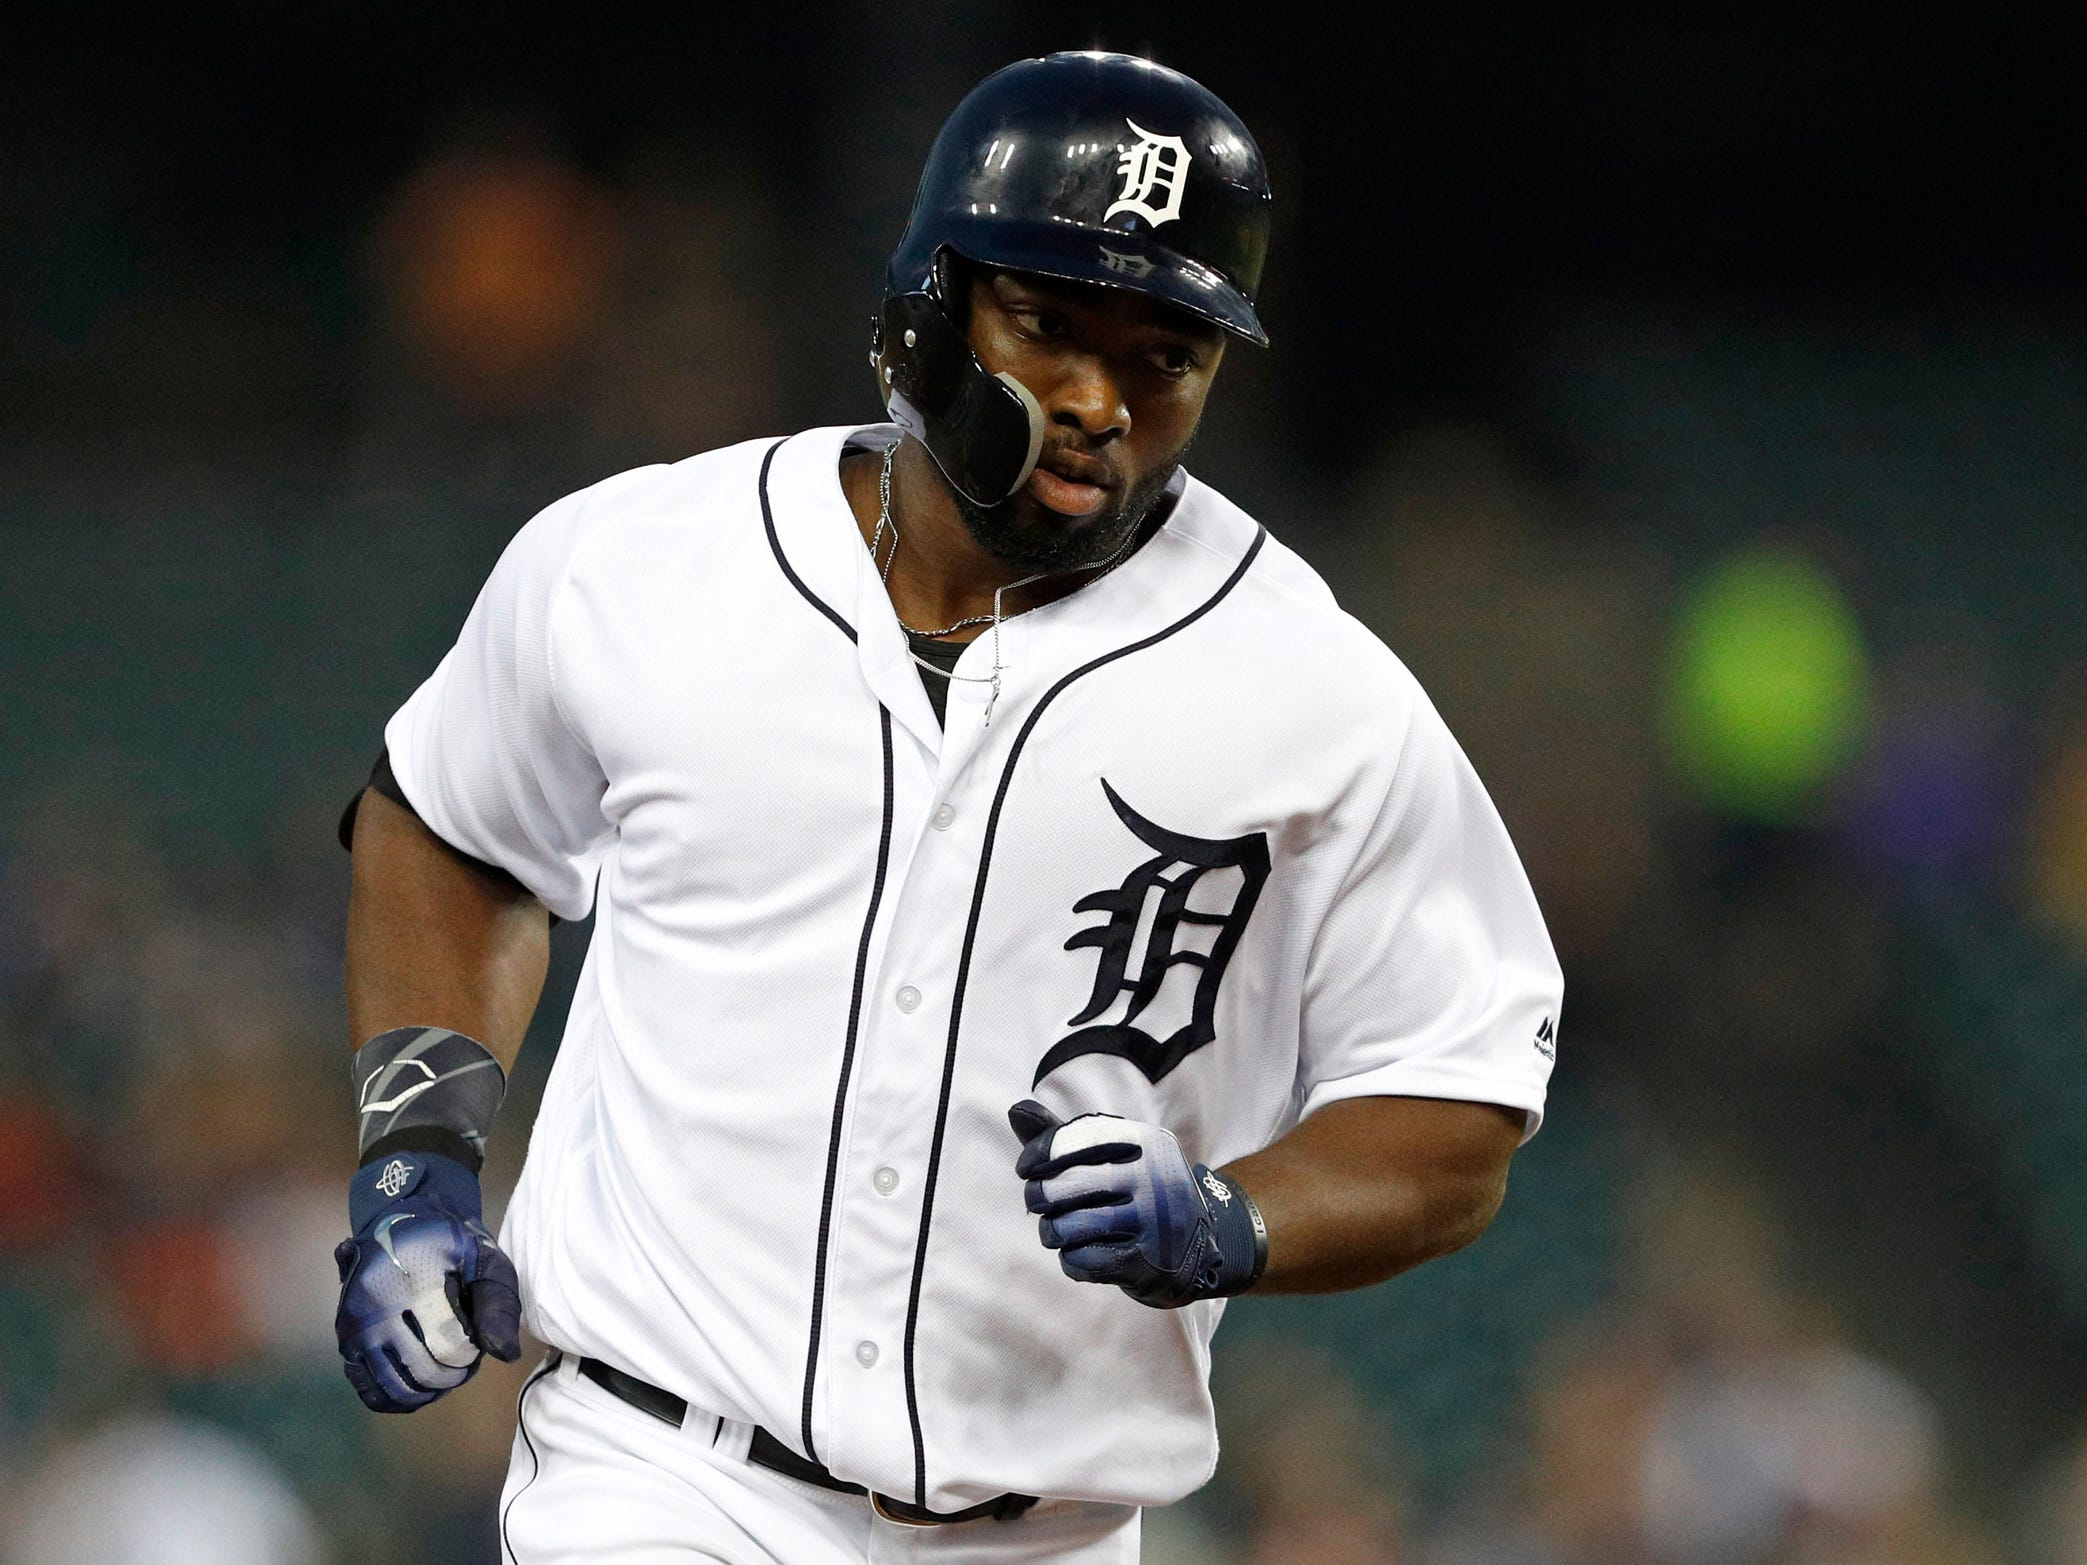 Detroit Tigers left fielder Christin Stewart rounds the bases after hitting a two-run home run during the first inning against the Kansas City Royals at Comerica Park on Sept. 20, 2018. It was Stewart's first career MLB homer.